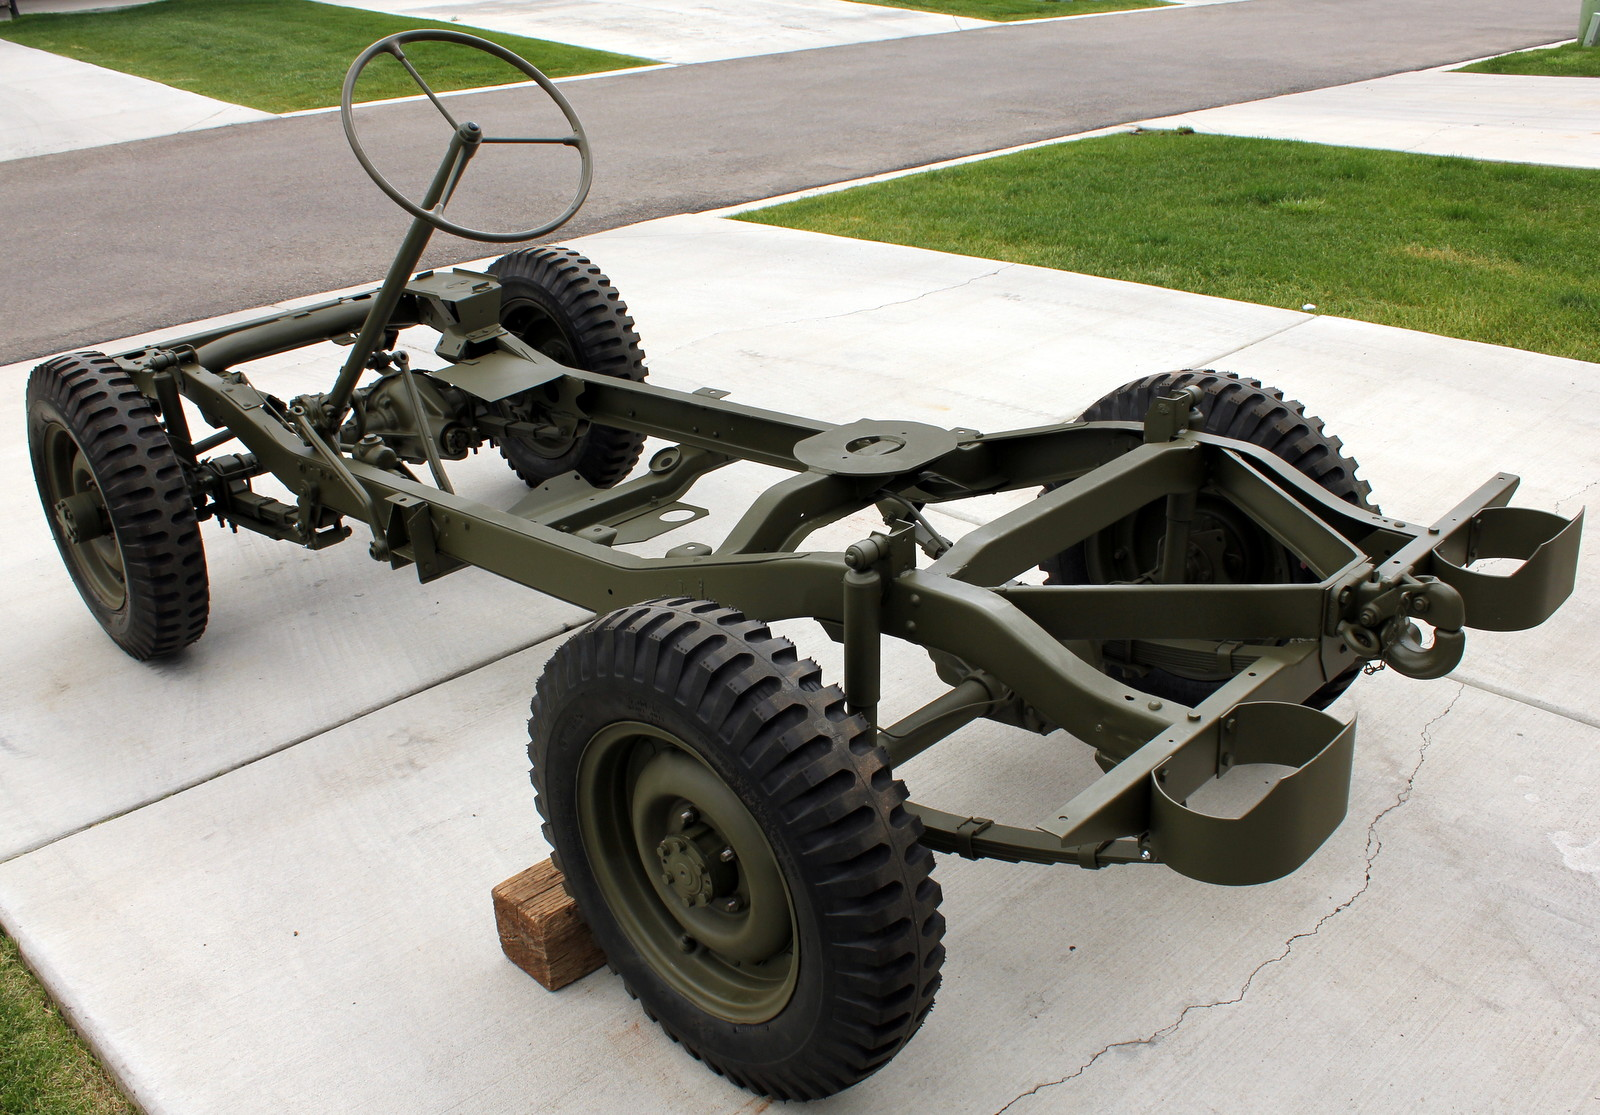 Favori 1943 Willys MB Jeep Restoration Project: Frame Painting Completed HB51